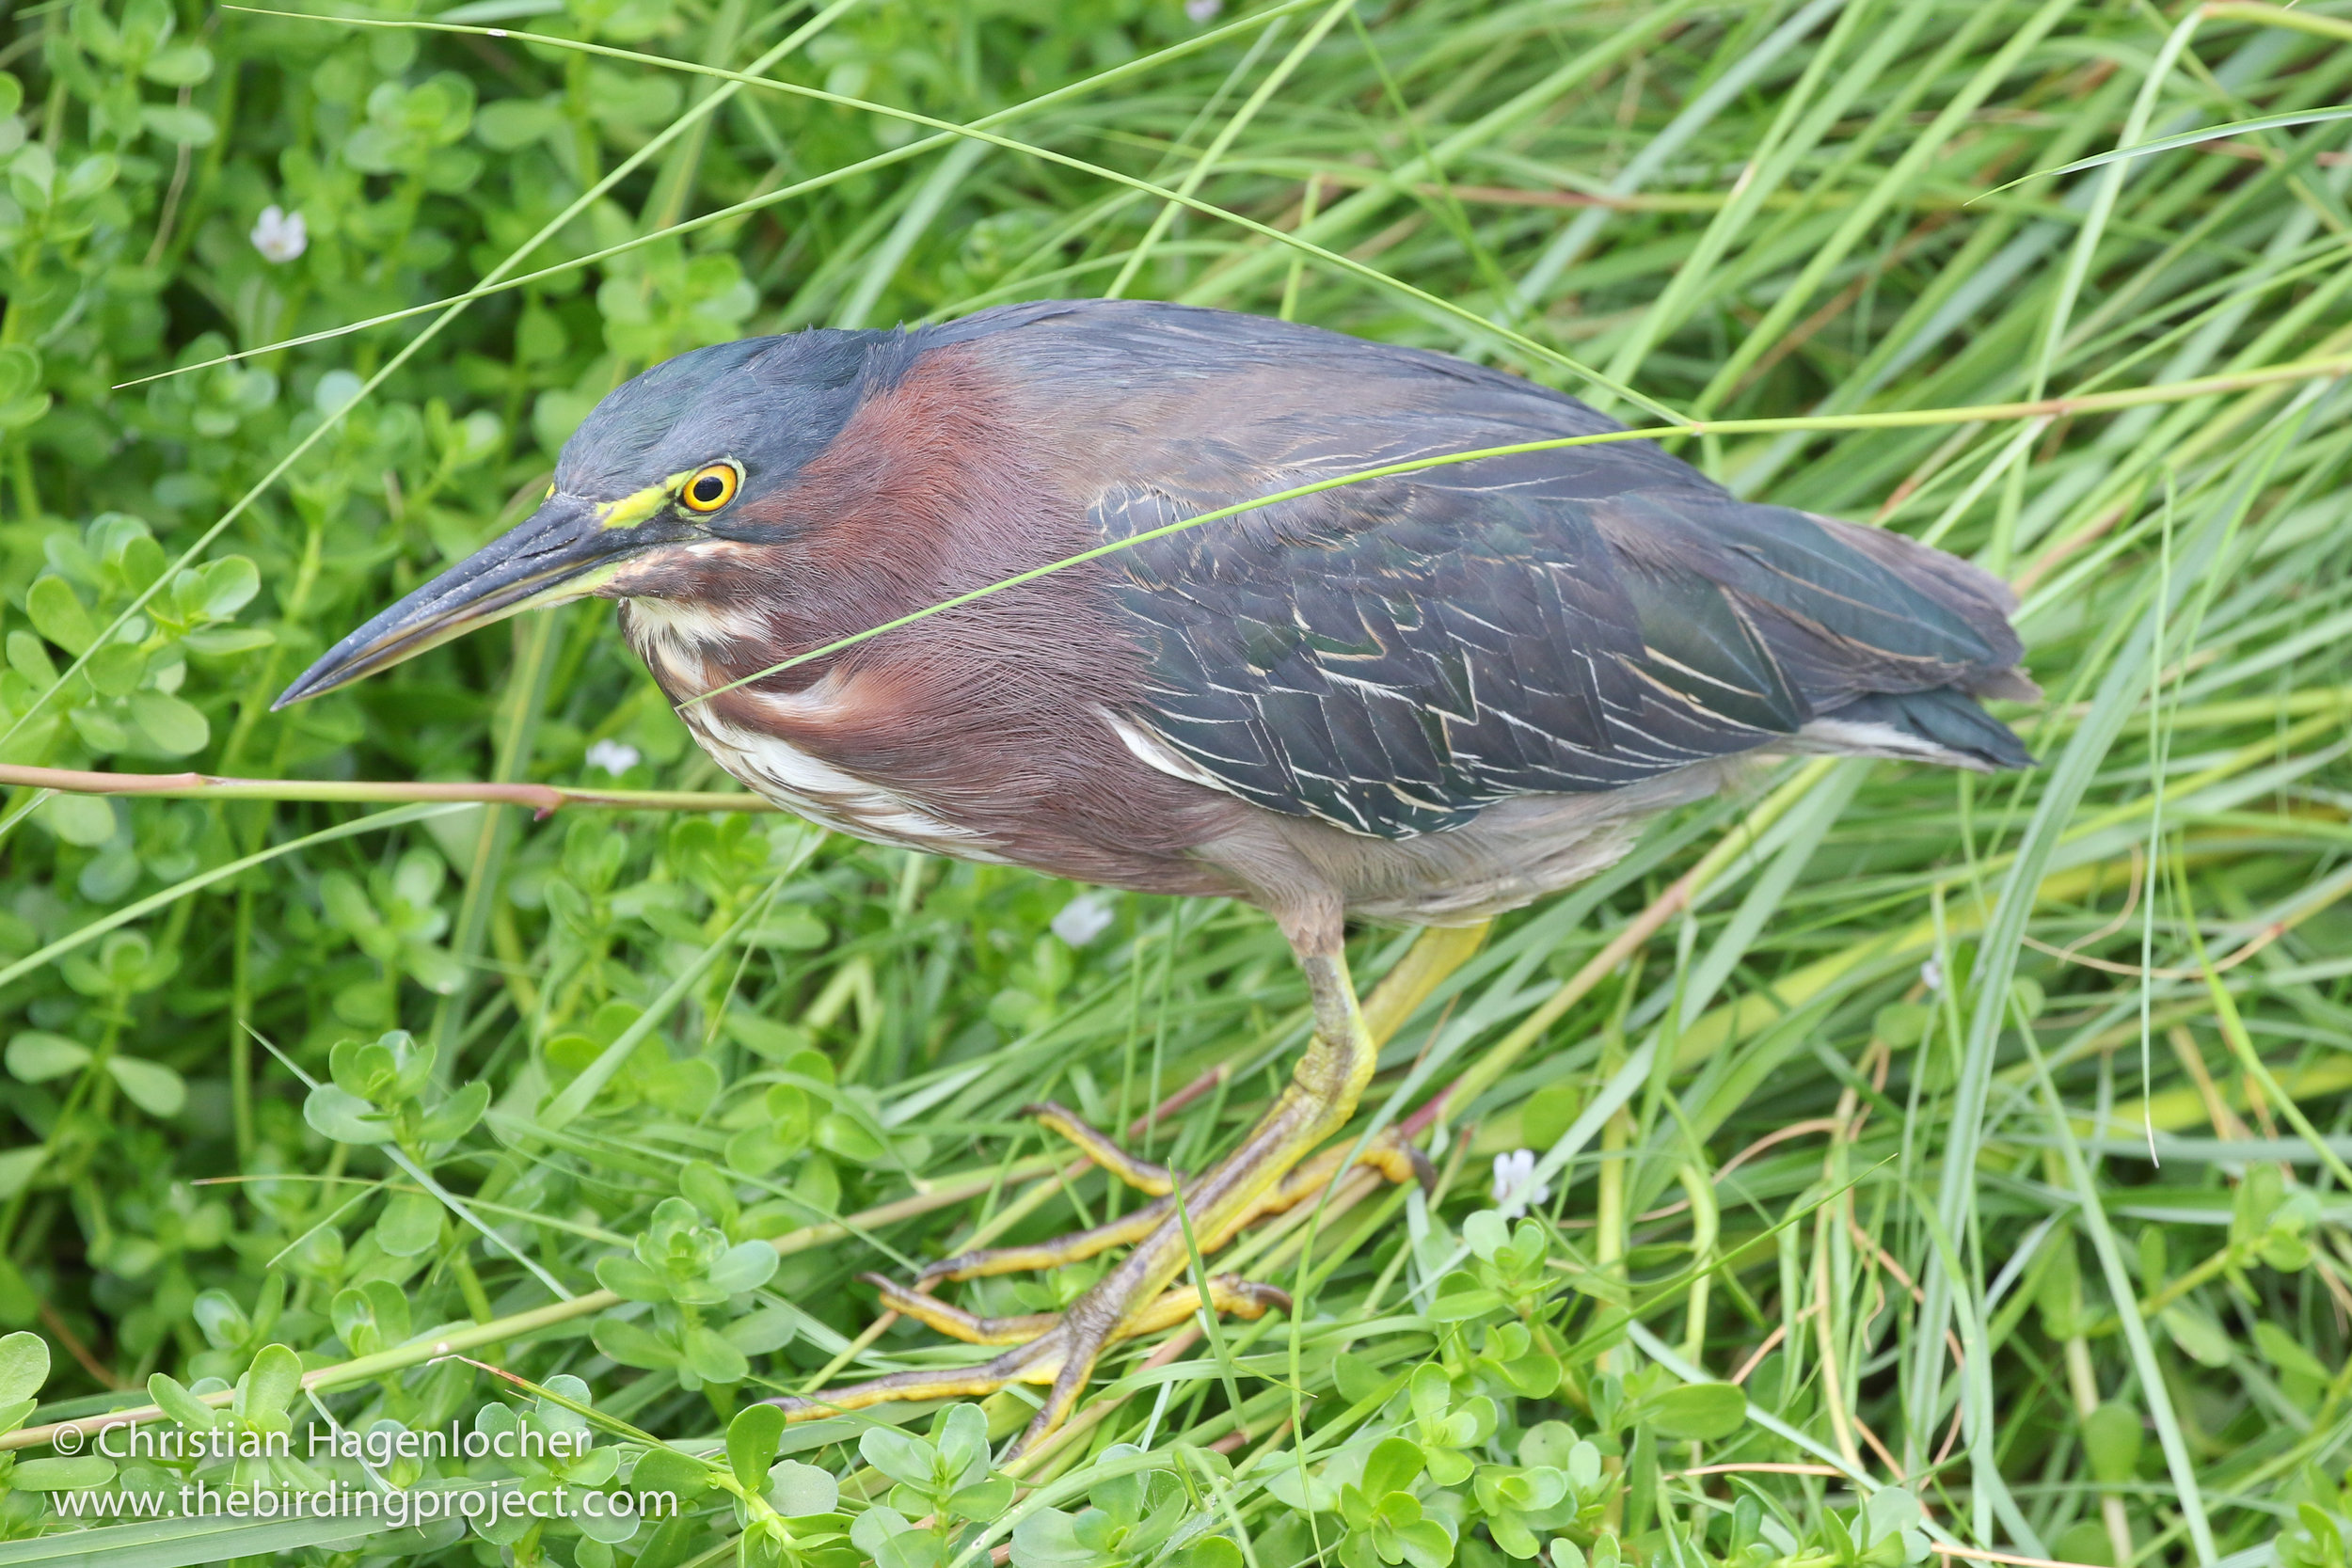 A Green Heron showed nicely, allowing everyone to get good views.